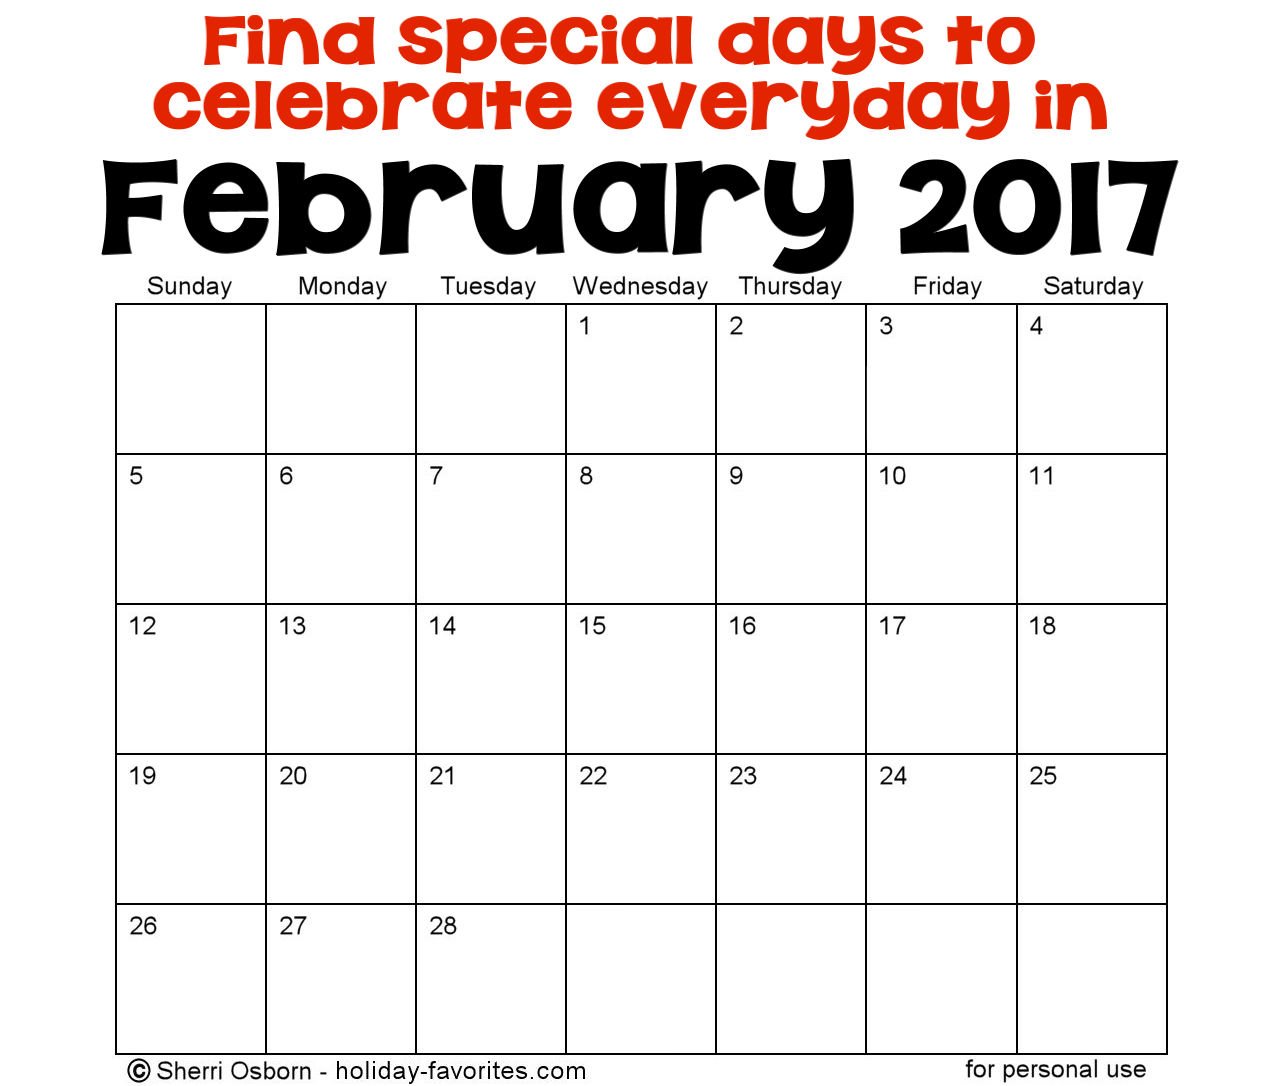 February Holidays and Special Days